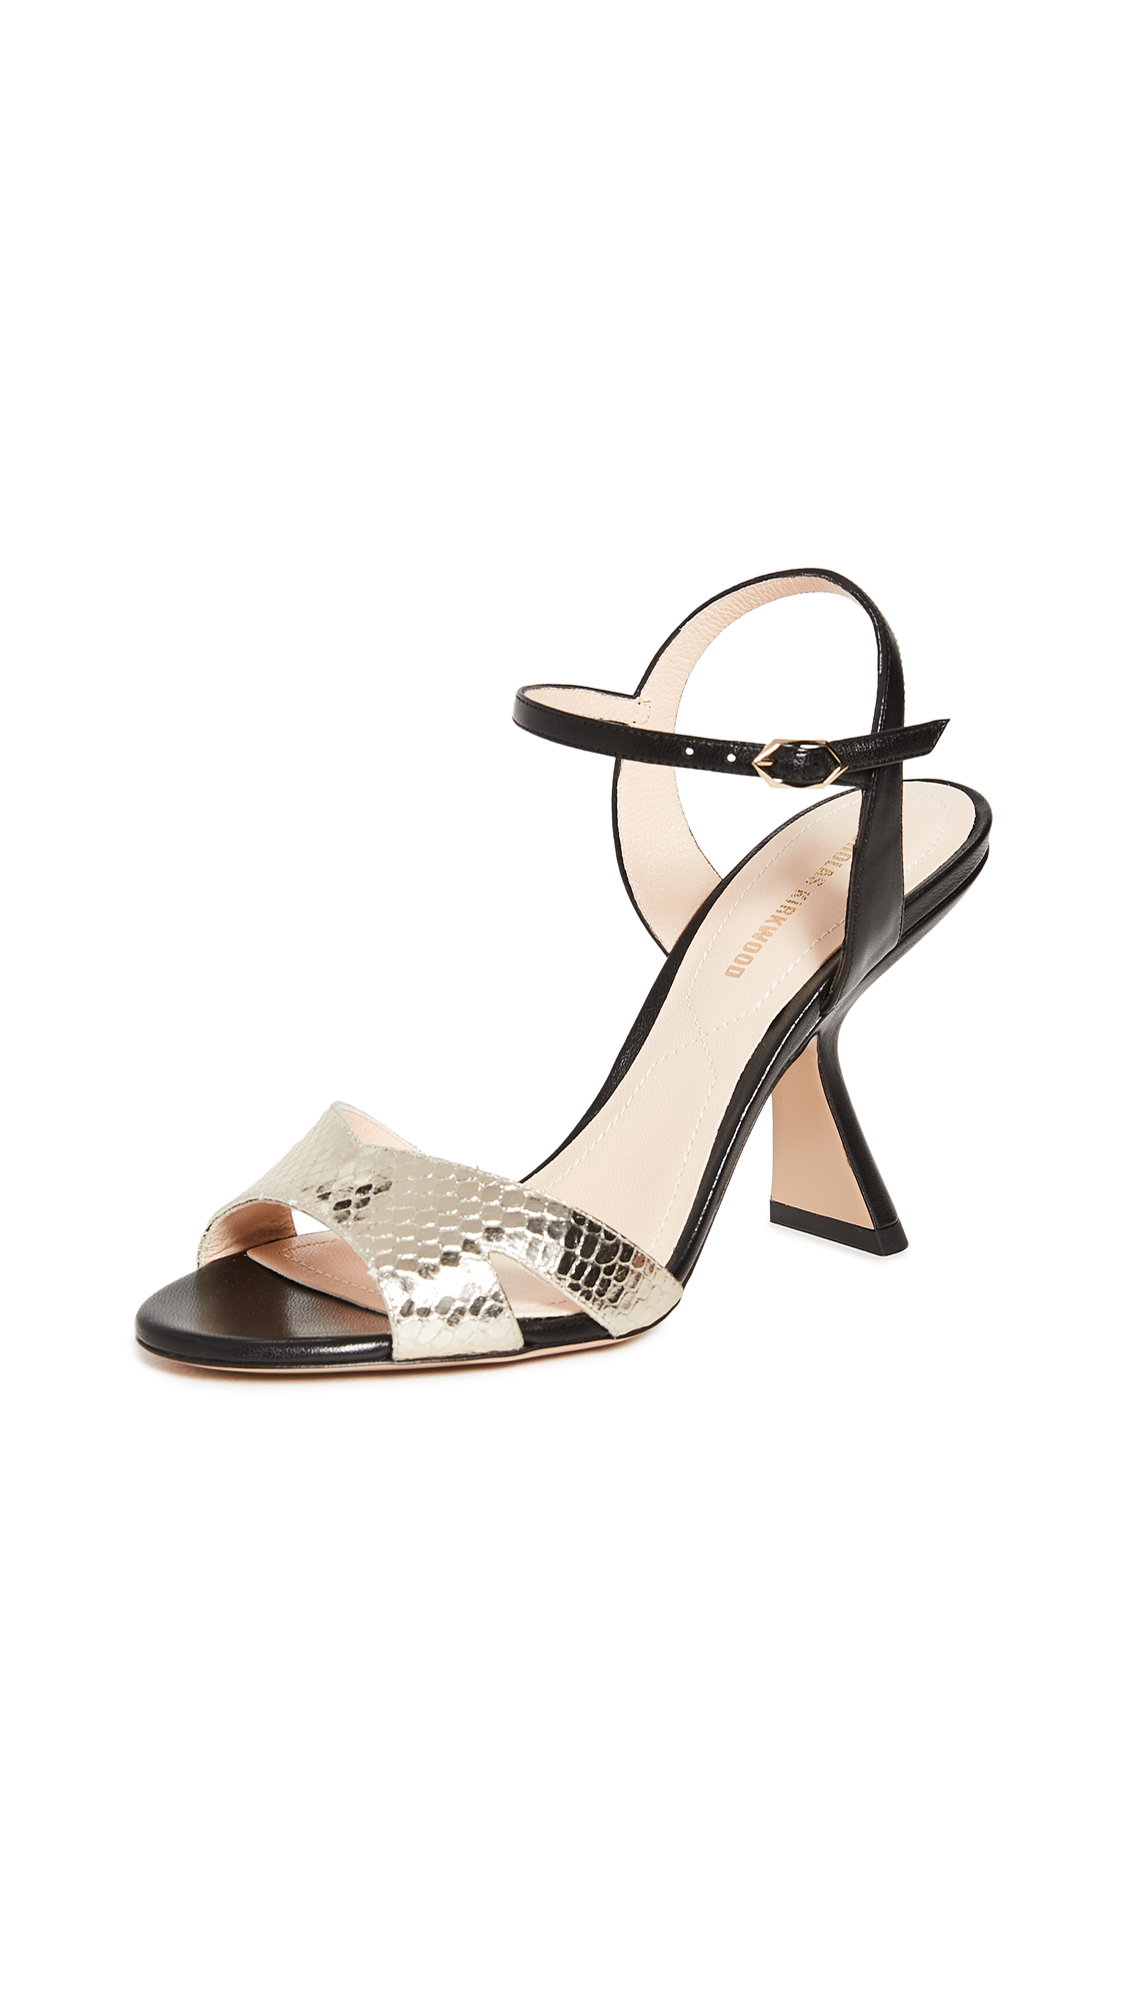 Nicholas Kirkwood Lexi Sandals - 60% Off Sale